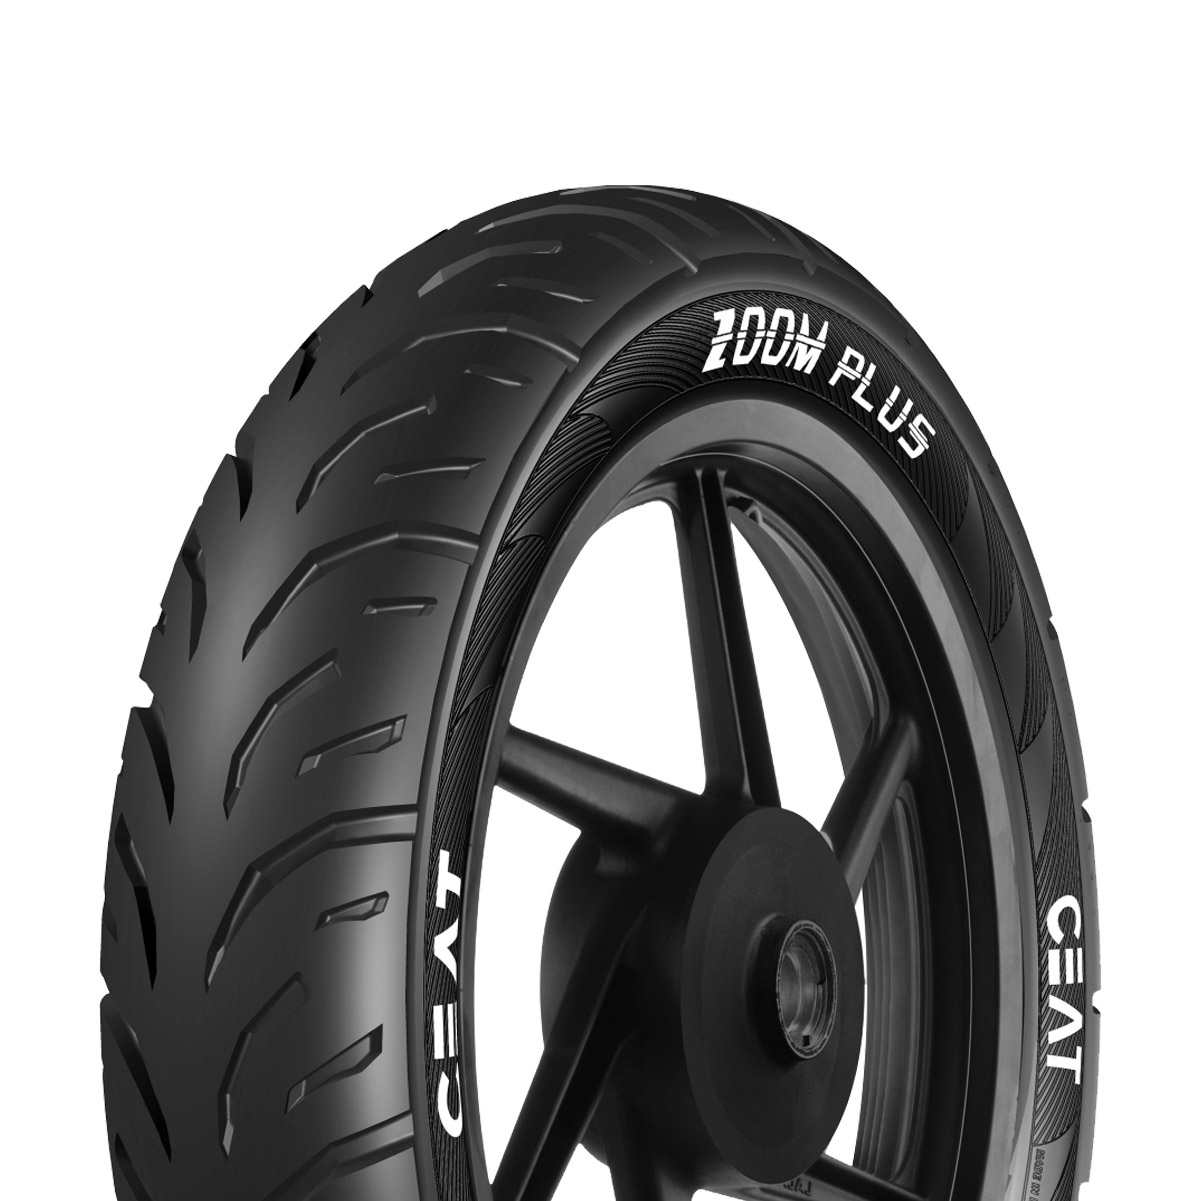 CEAT ZOOM PLUS 80/100 18 Tubeless 54 P Rear Two-Wheeler Tyre